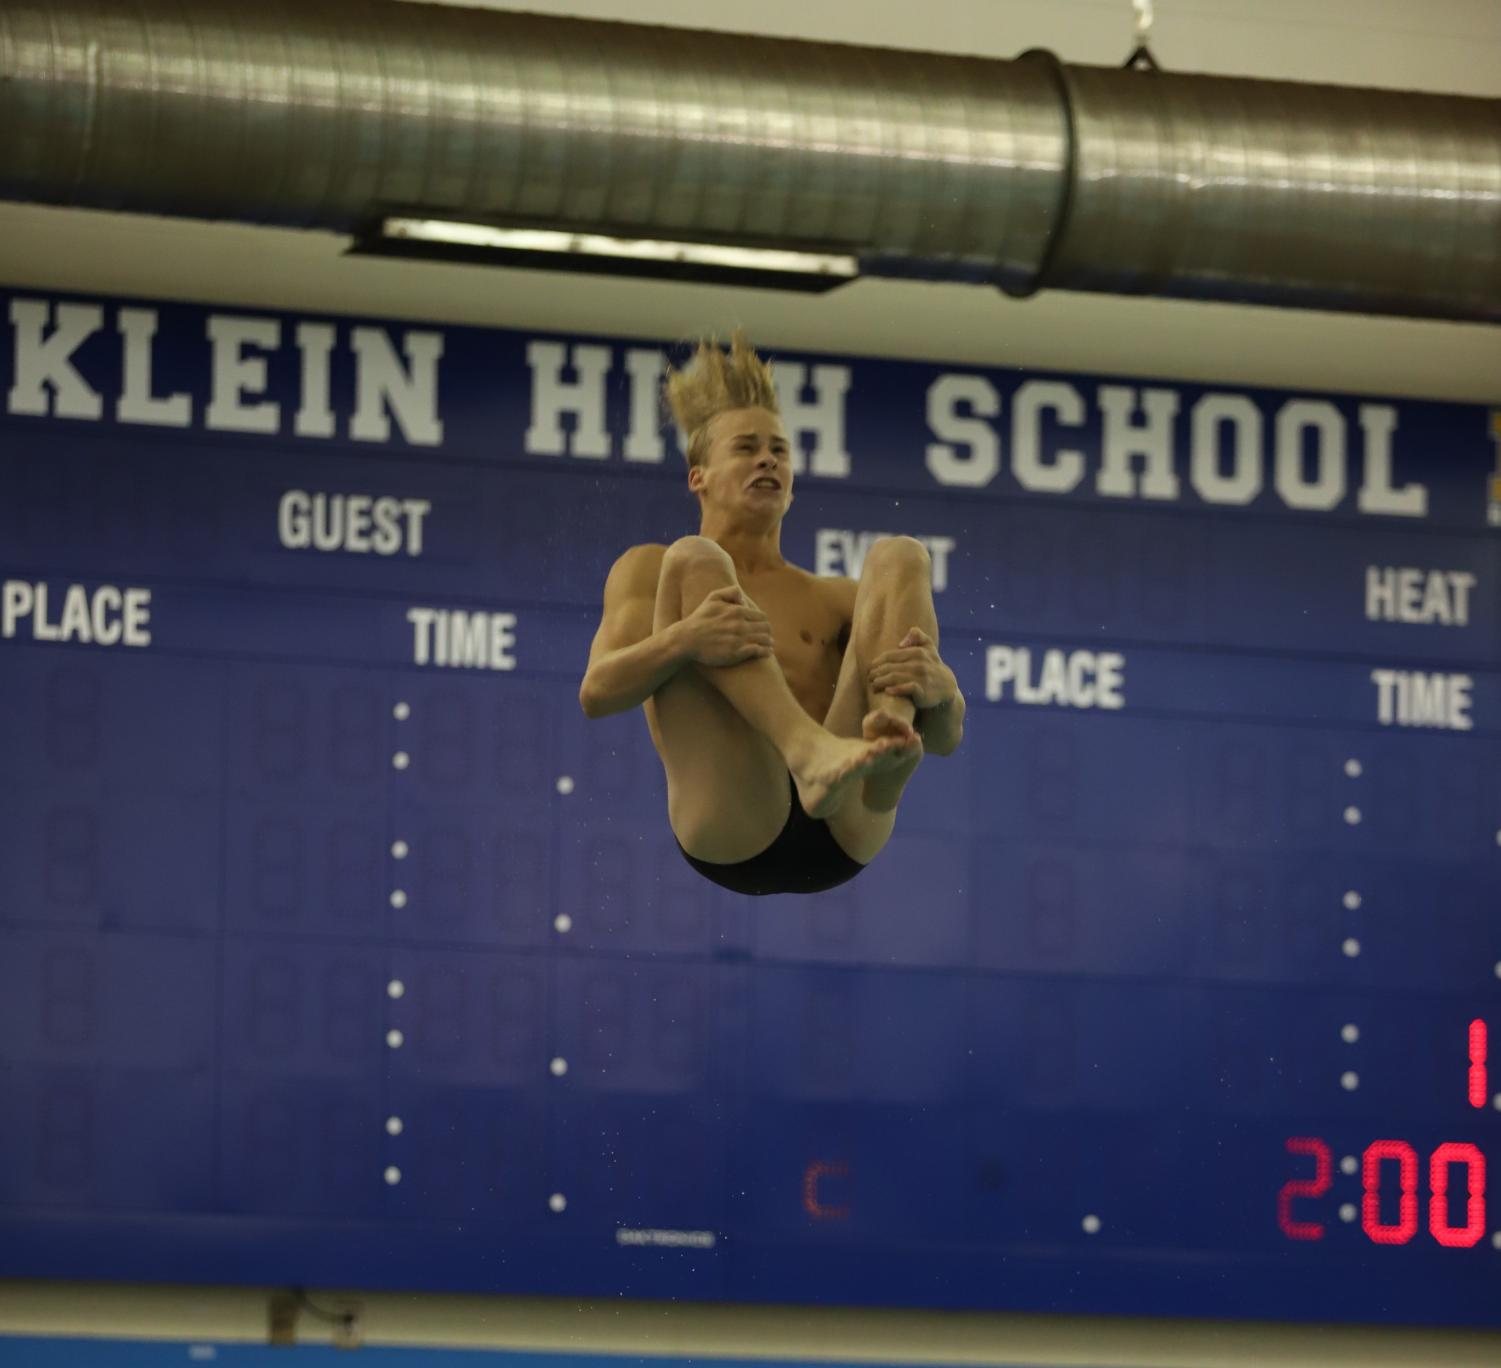 Sophomore Brady Gottula, broke the meet record and won the diving division out of all of Klein. Despite his win, the men's team placed second but is gearing up for district meet.